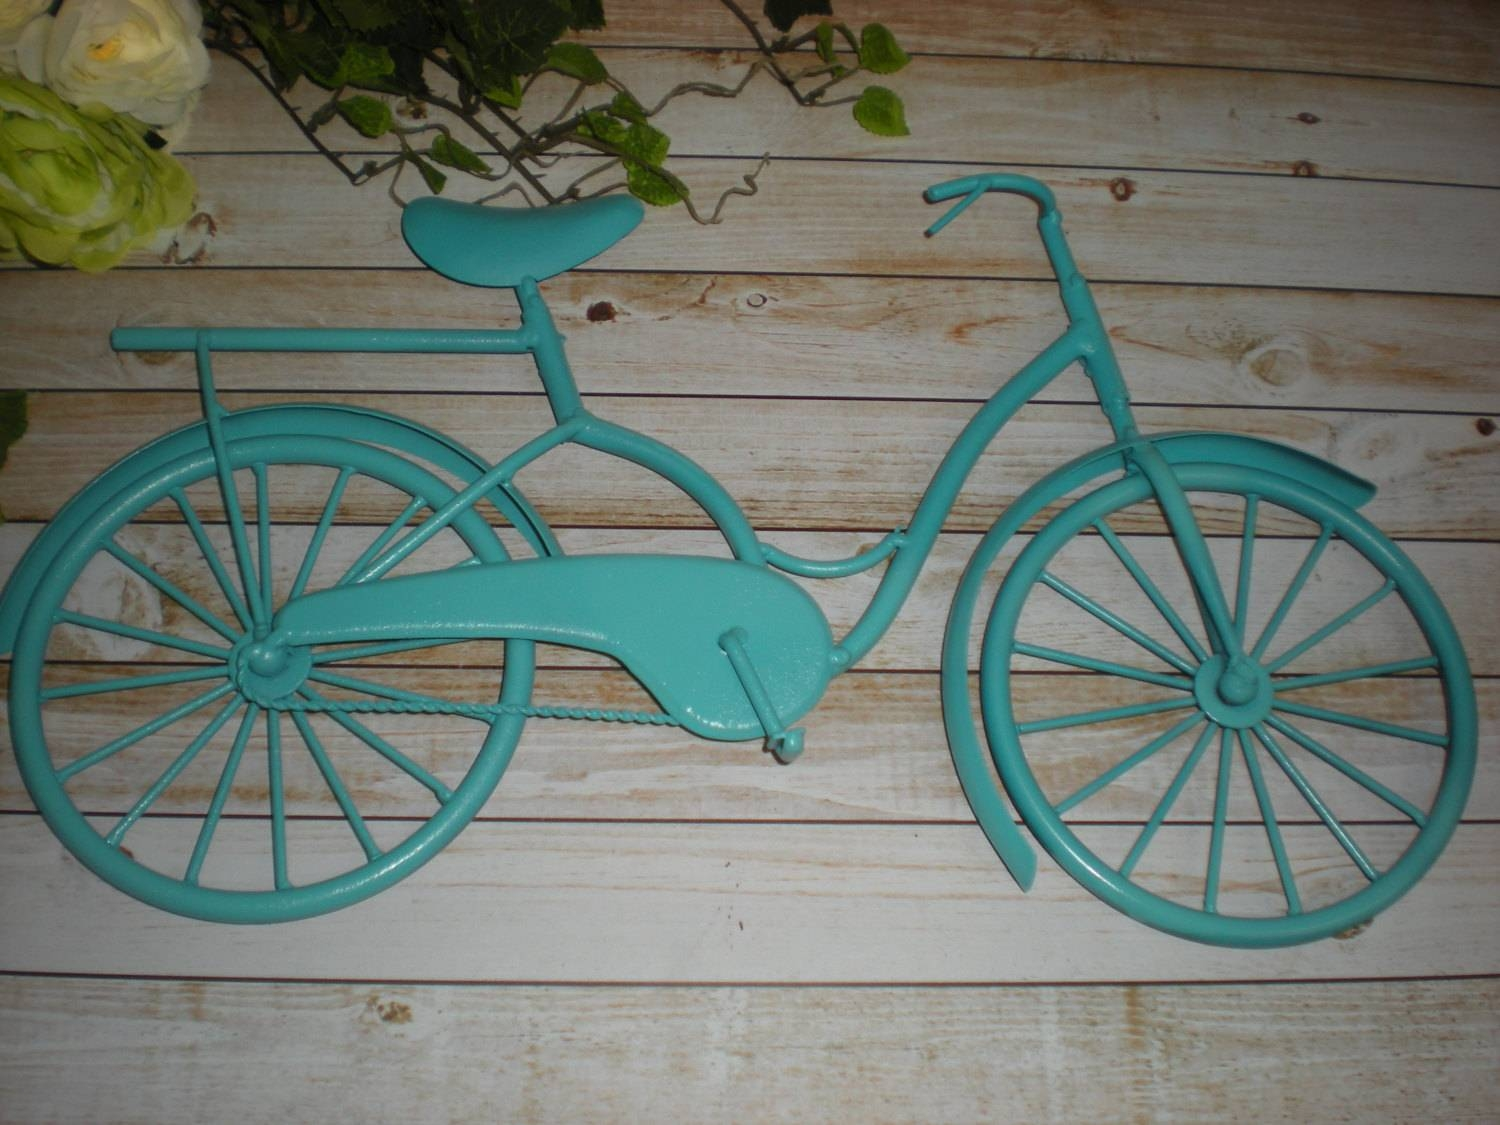 Winsome Metal Bicycle Wall Decor Bicycle Wall Art Wall Wrought Inside Most Recently Released Bicycle Metal Wall Art (View 20 of 20)